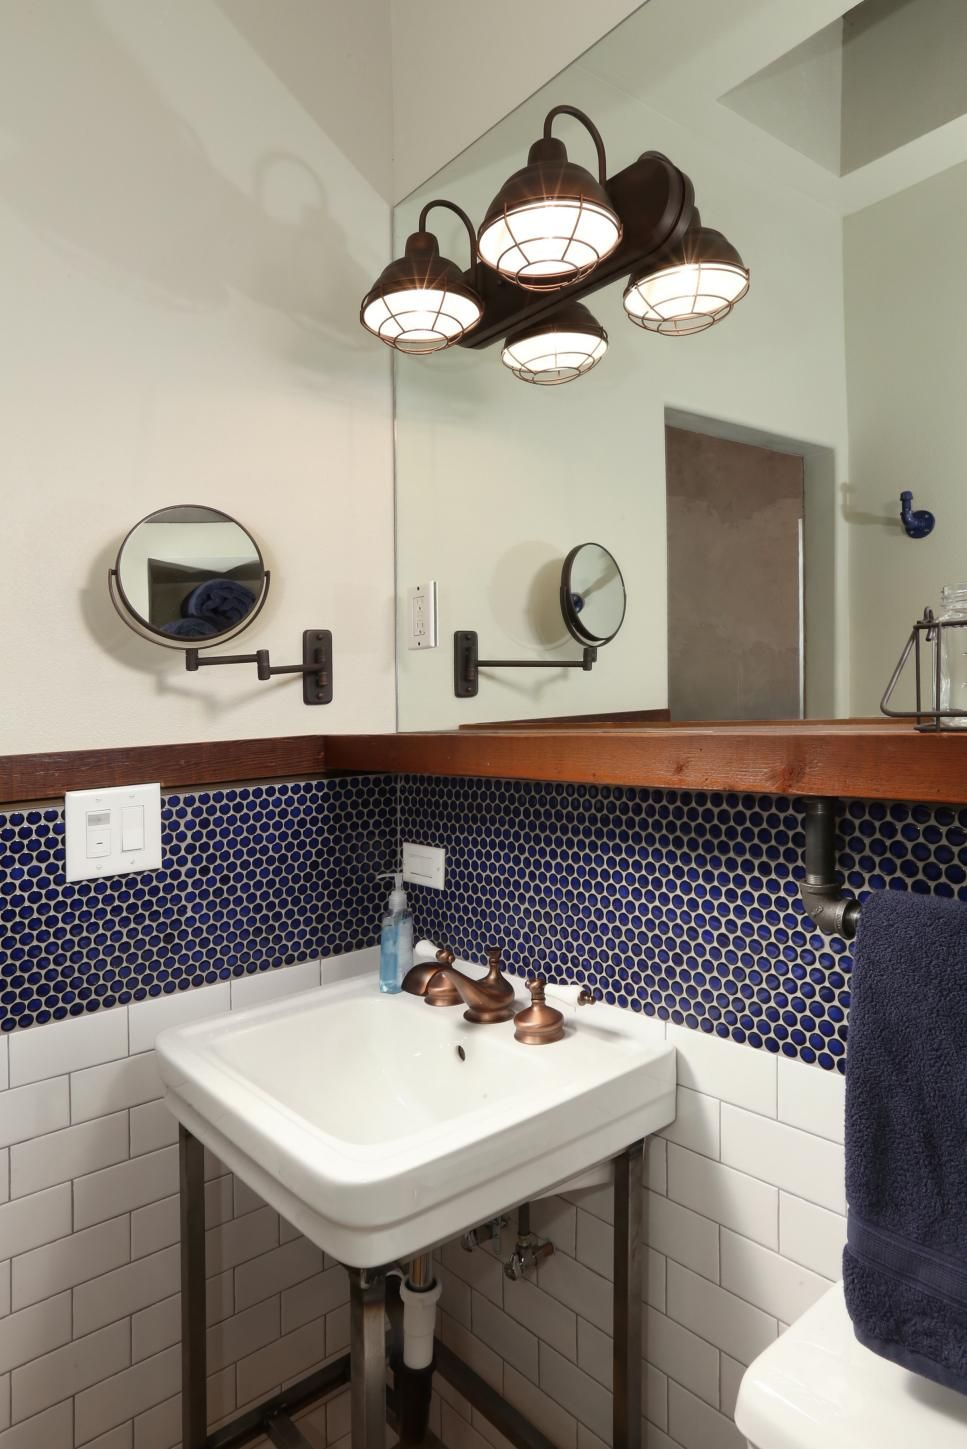 Reclaimed wood shelves add function to this custom bathroom reclaimed wood shelves add function to this custom bathroom renovation in the space contemporary dailygadgetfo Images